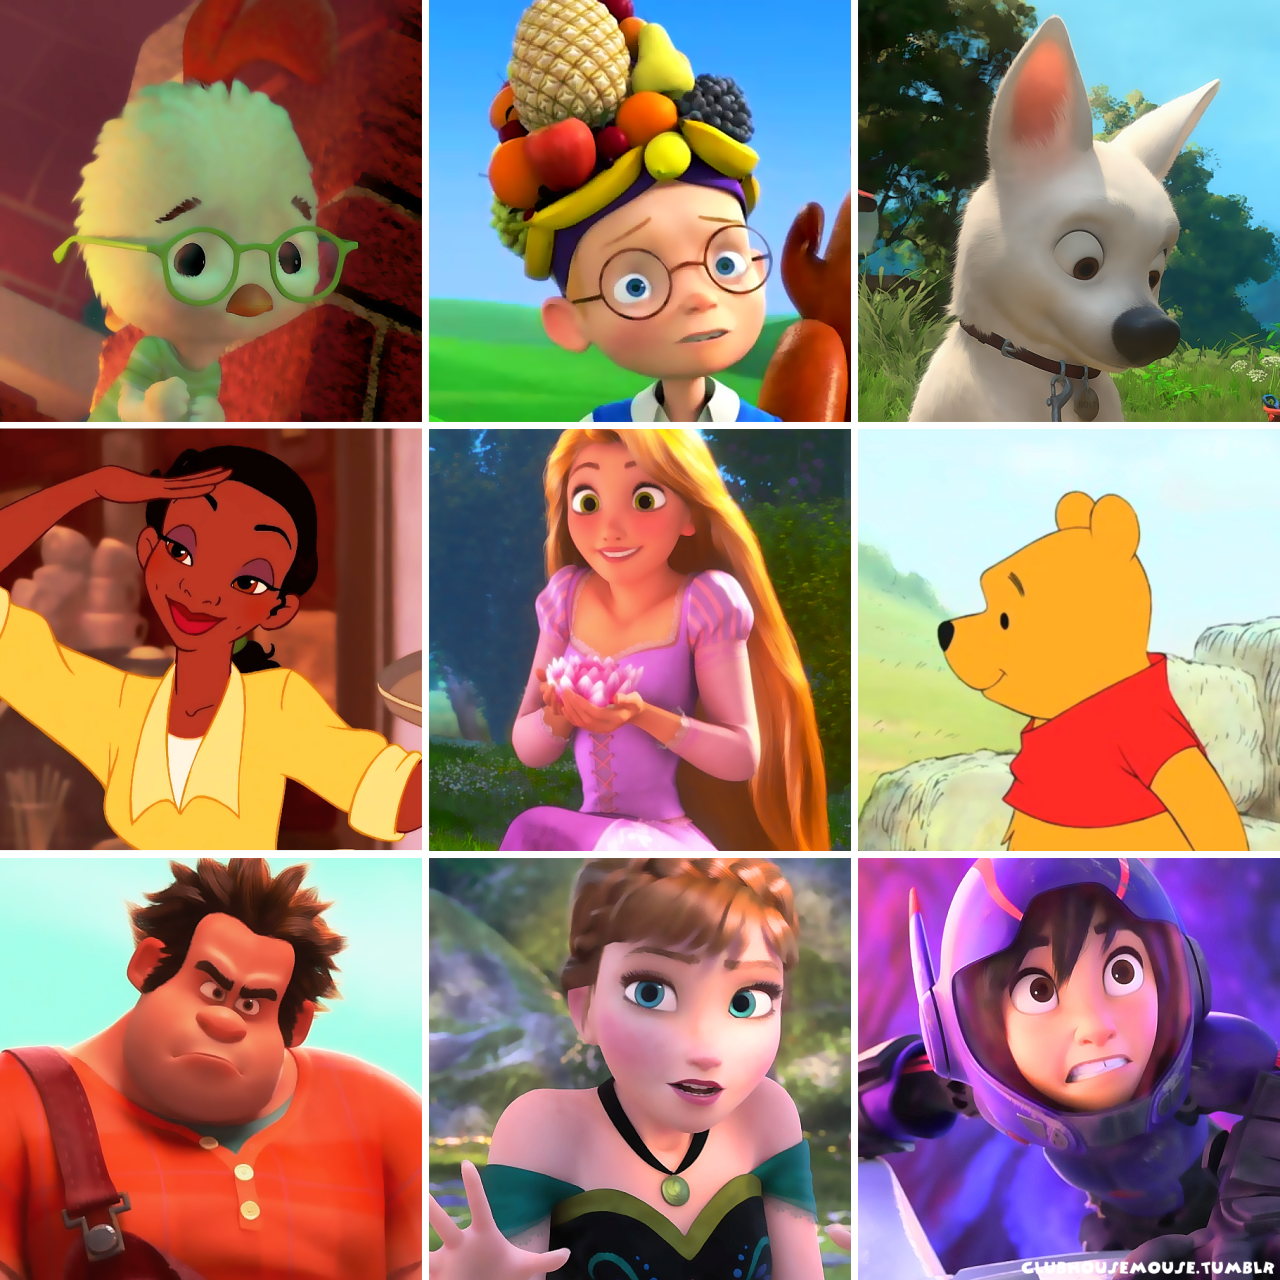 lilo and stitch mine disney The Princess and the Frog ...